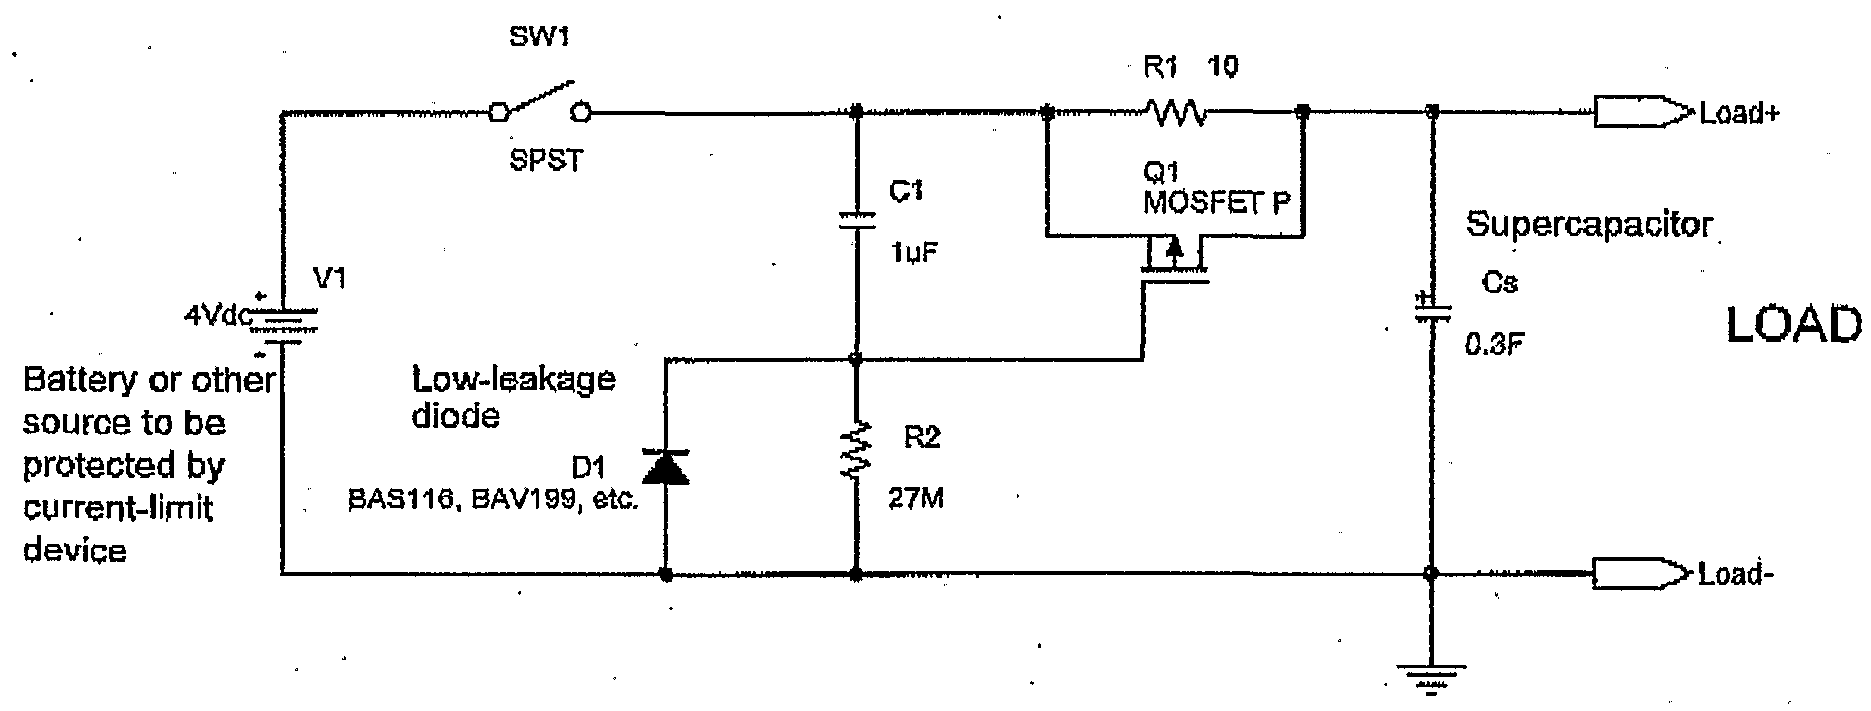 Current Source Circuit Diagram Powersupplycircuit How Electrical Simple 15v Regulated Power Supply Patent Ep1665512a1 A Google Patentsuche Imgf000021 0001 Ep1665512a1hldeclen